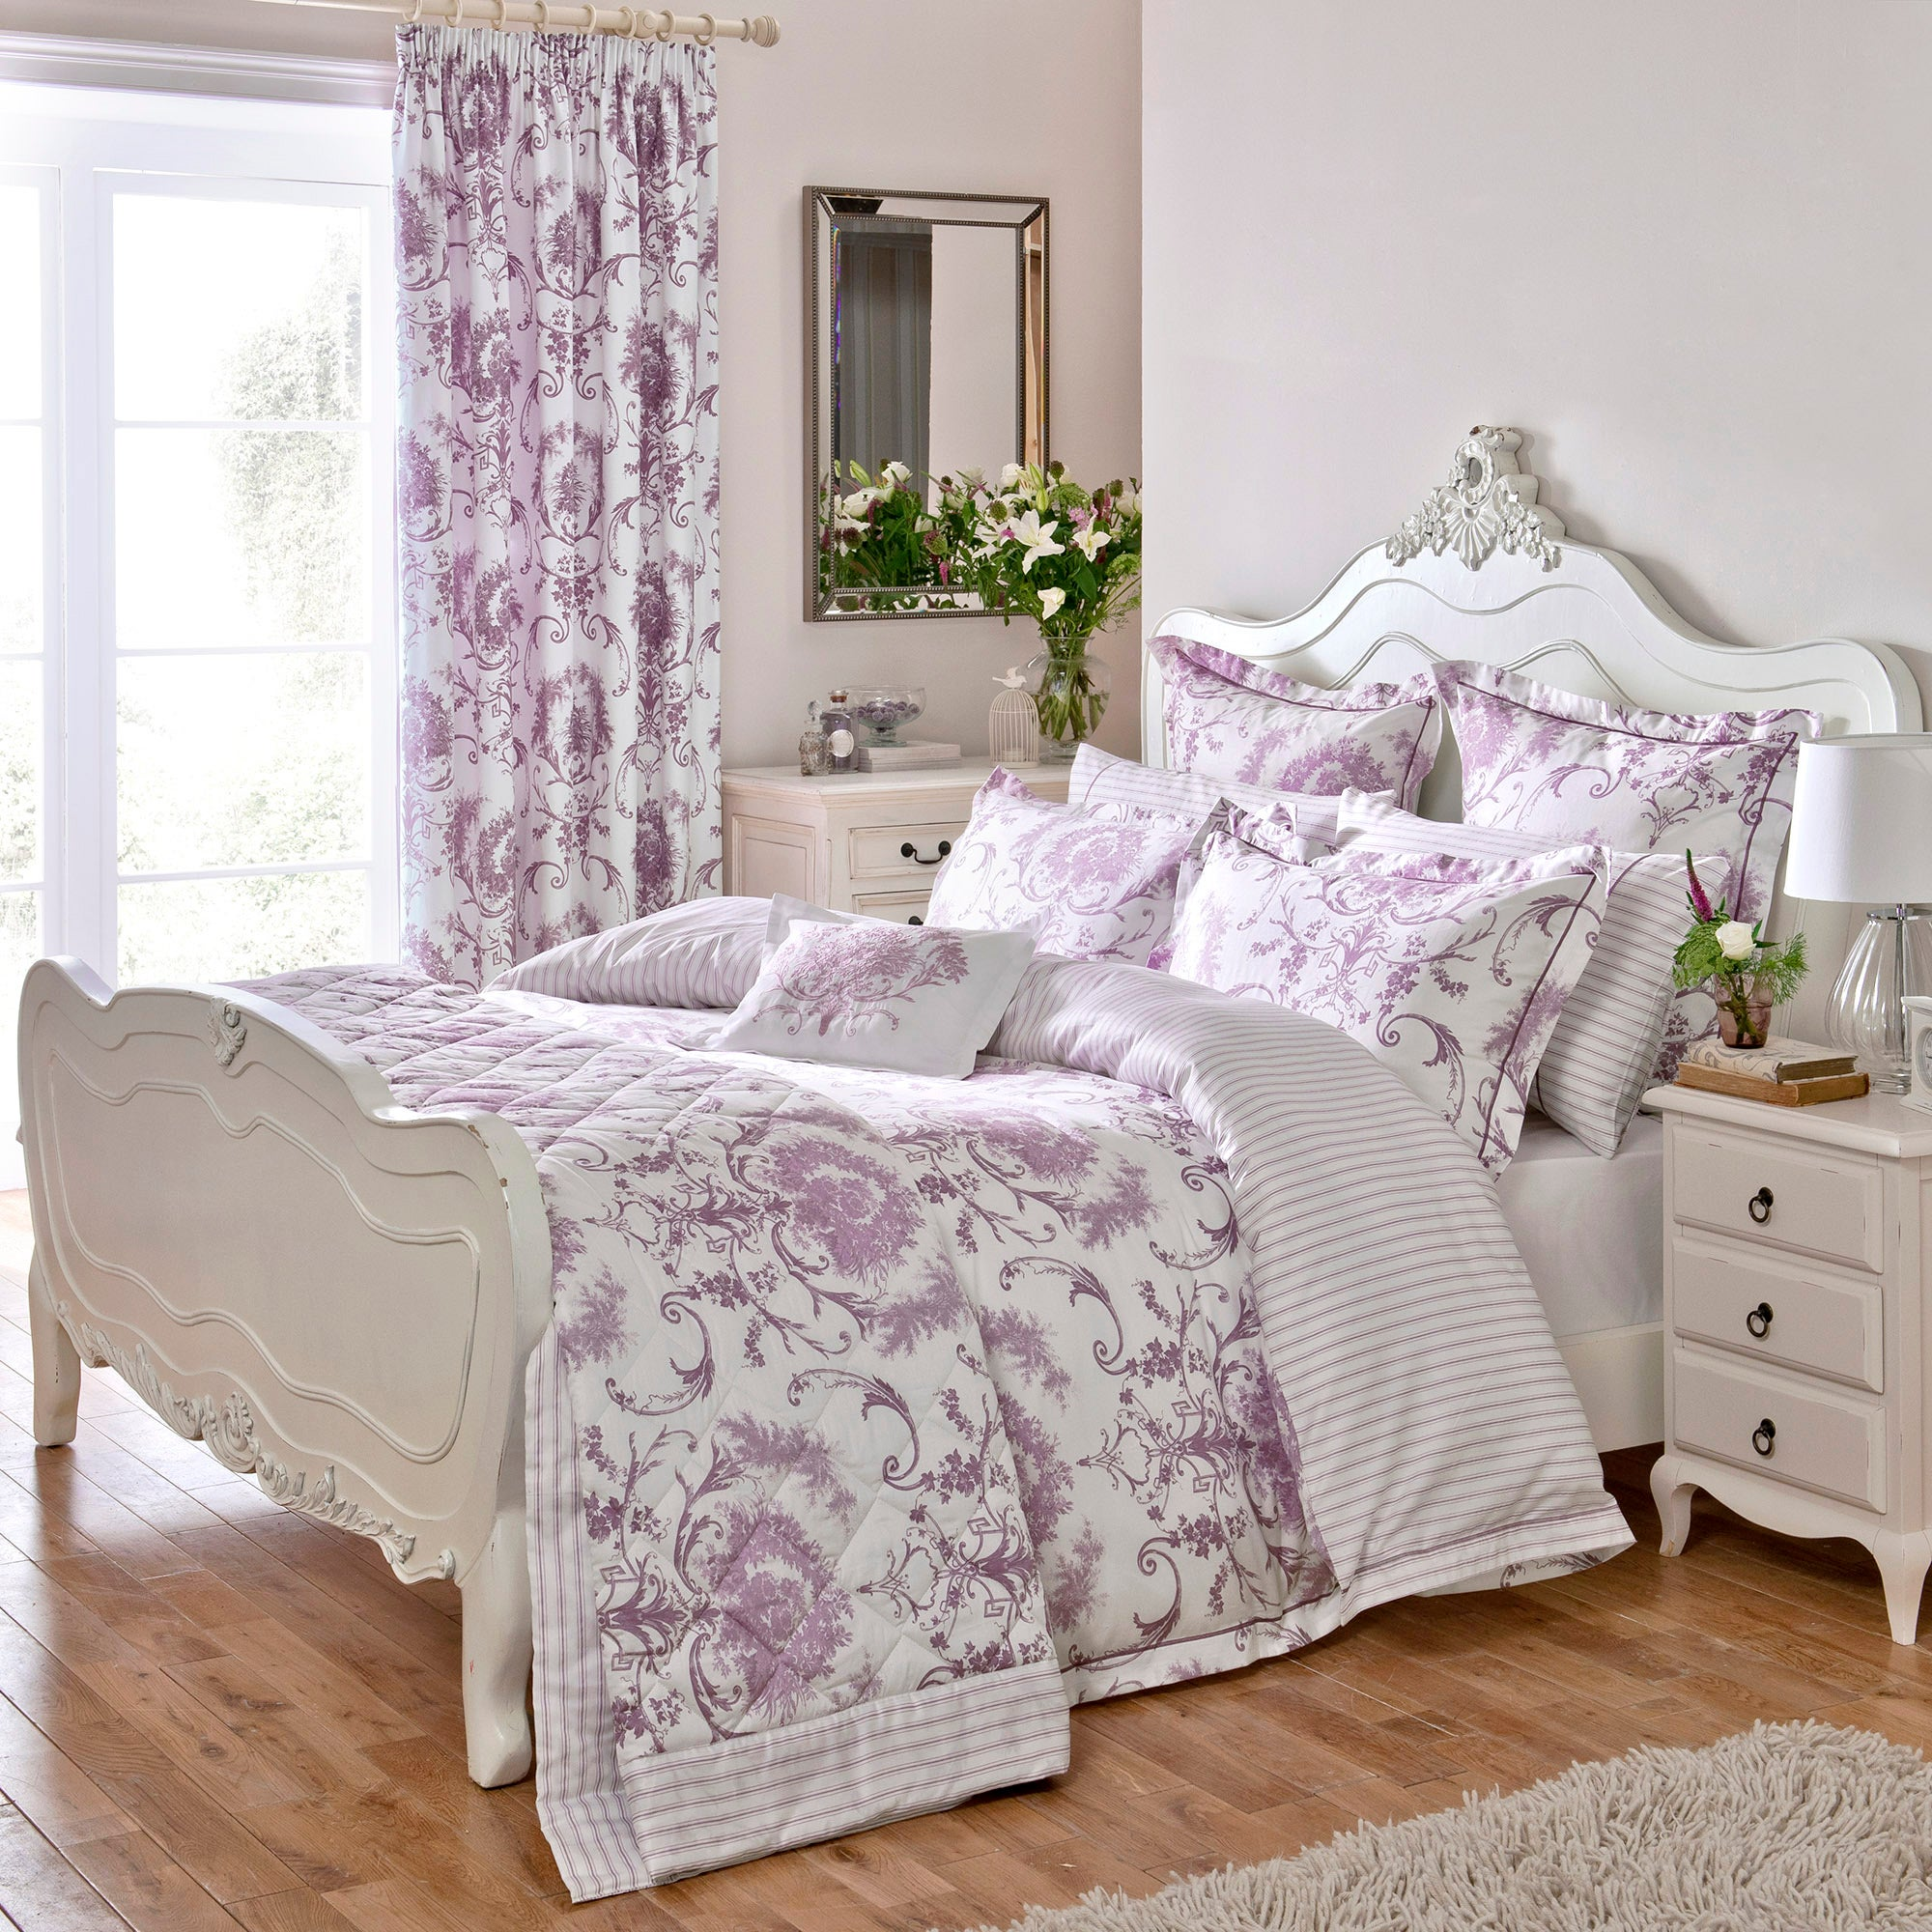 Dorma Heather Toile Collection Duvet Cover Set